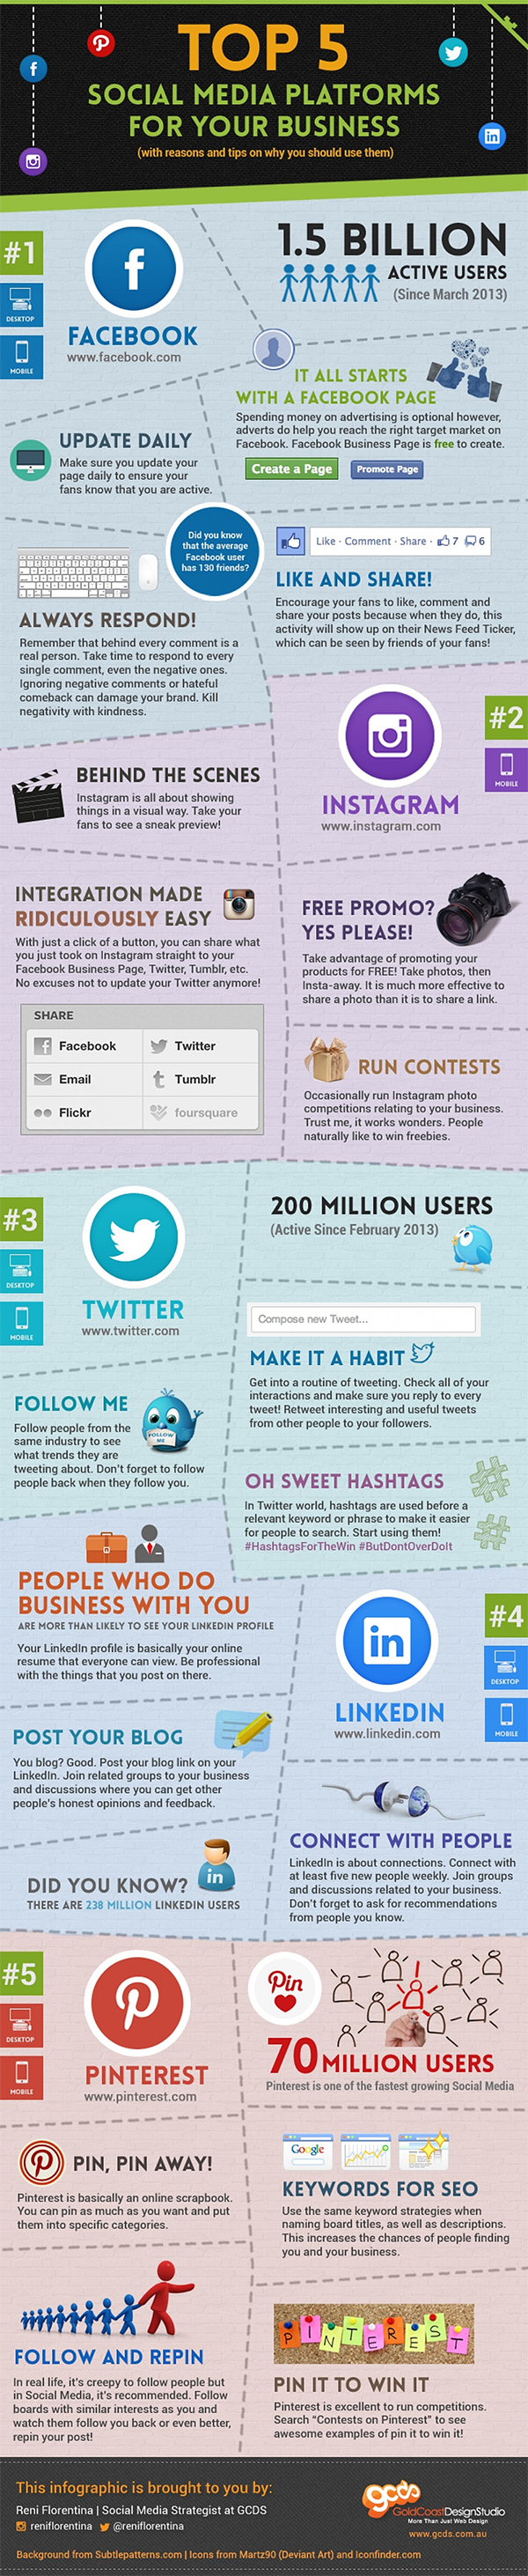 The Top 5 Social Media Platforms You Should be Using to Market Your Business #Facebook #Twitter #LinkedIn #Instagram #Flickr #infographic